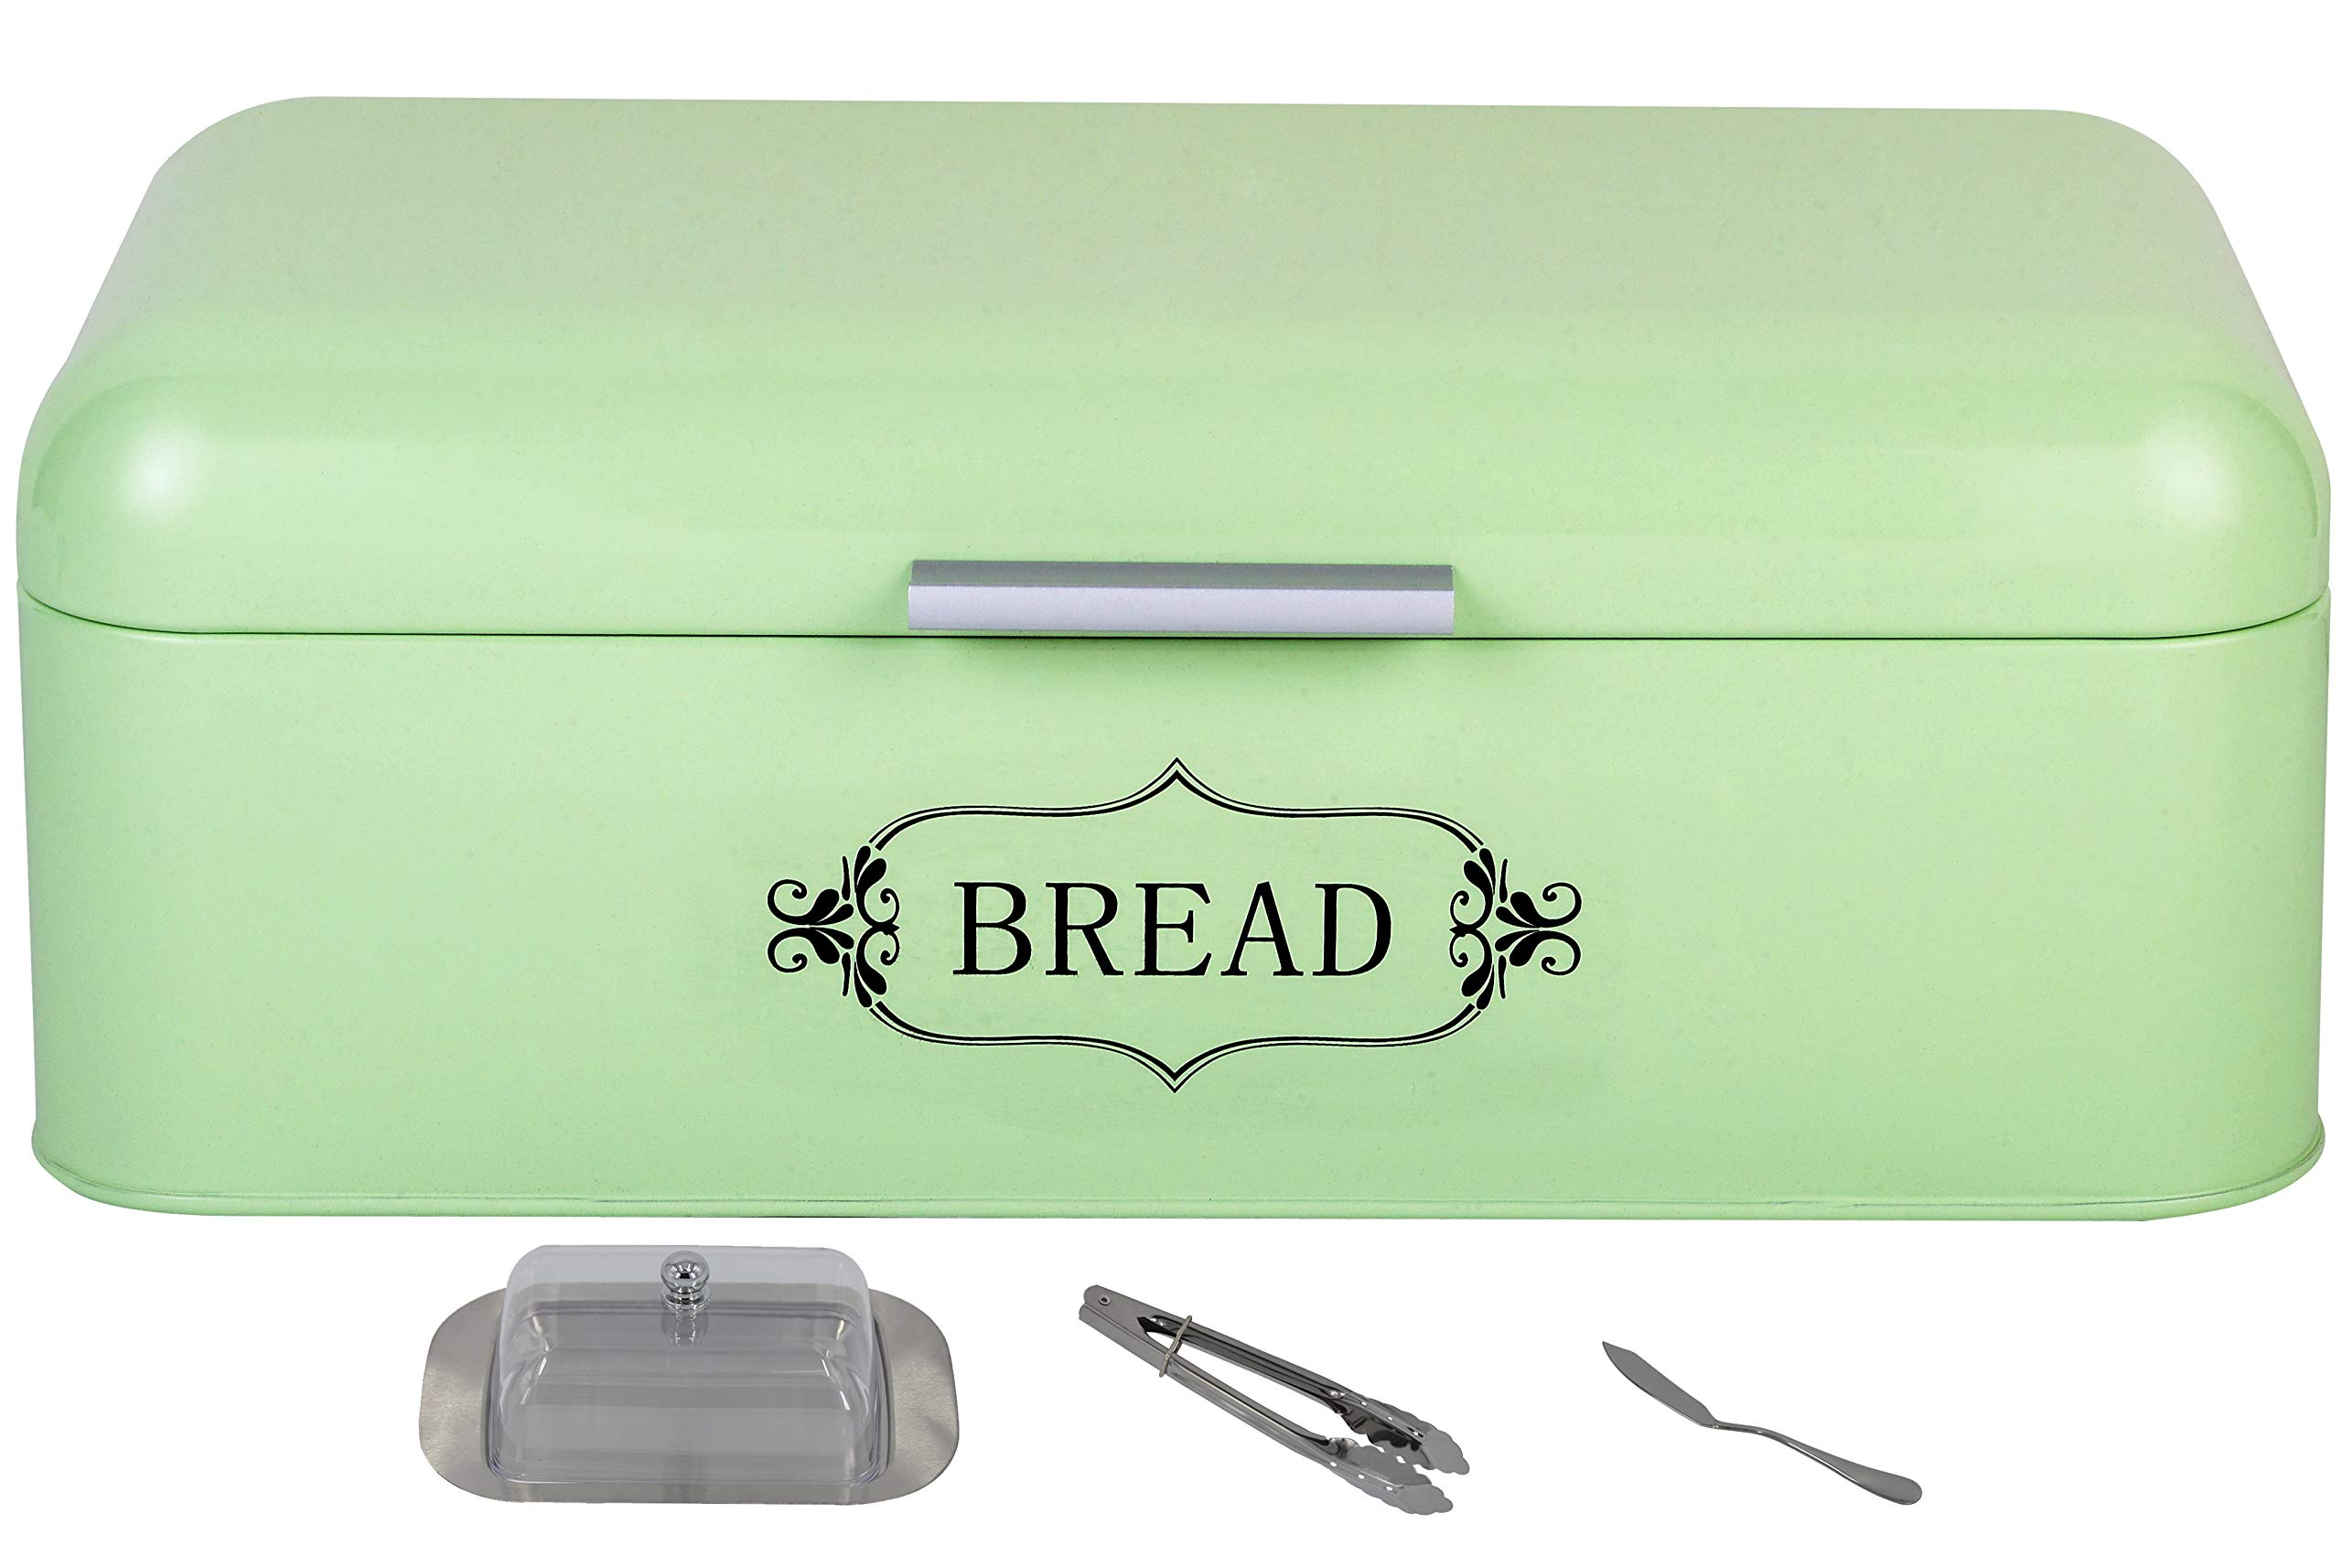 SUNERIC Vintage Bread Box for Kitchen | 16.5''X9''X6.3'' Steel Bread Bin with Powder Coating with Free Butter Dish, Butter Knife and Tong (Light Green)